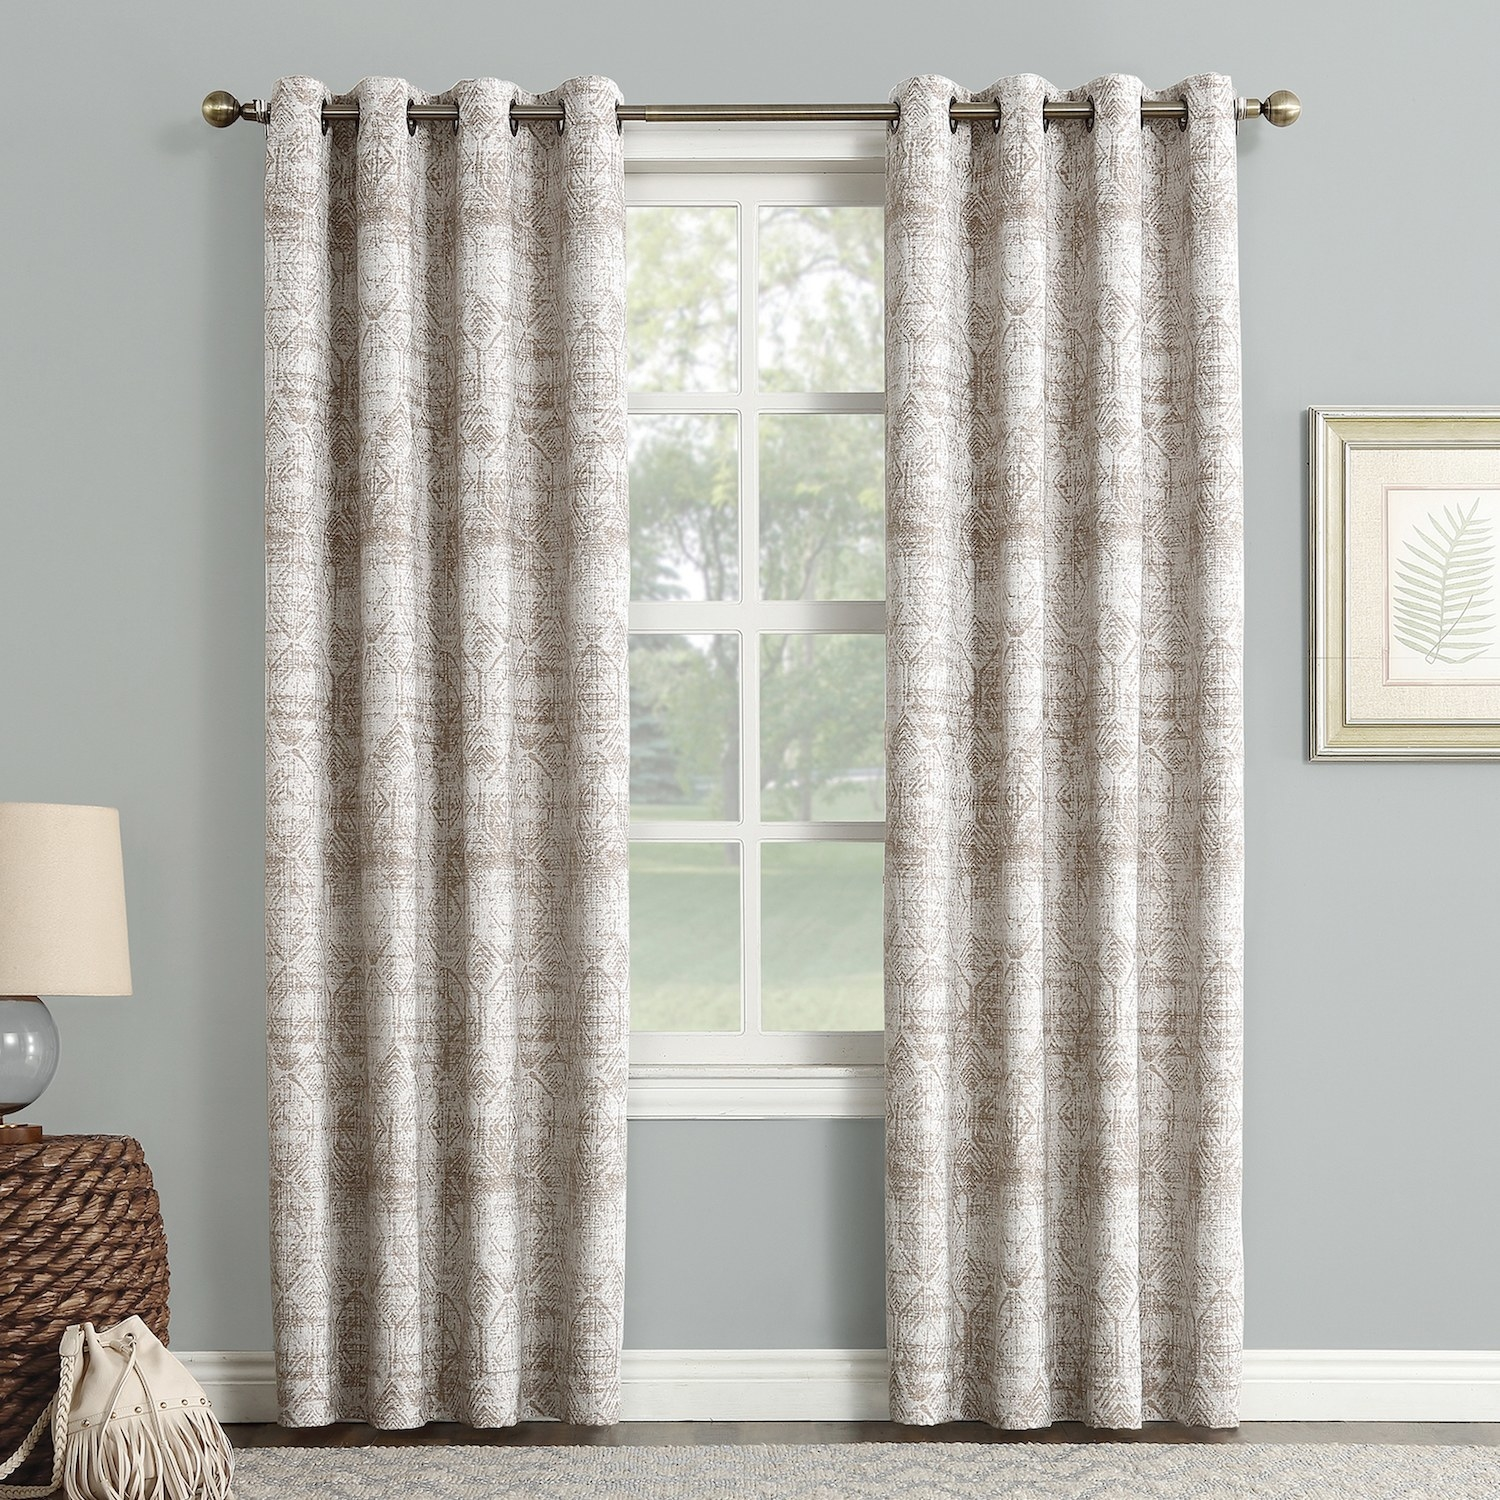 The beige blackout curtains with a geometric pattern hanging over a window